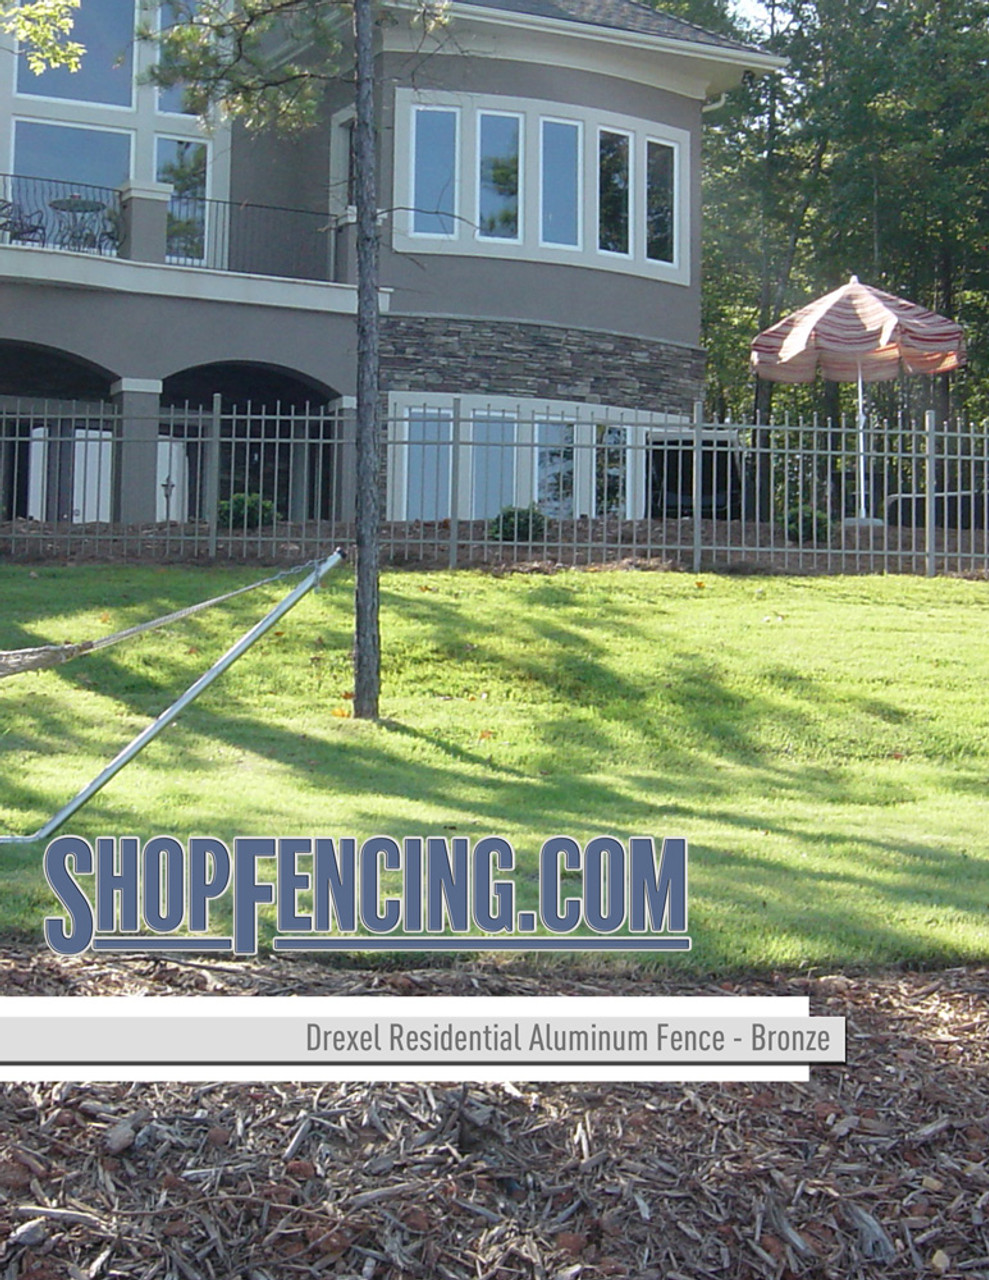 Bronze Drexel Residential Aluminum Fencing From ShopFencing.com